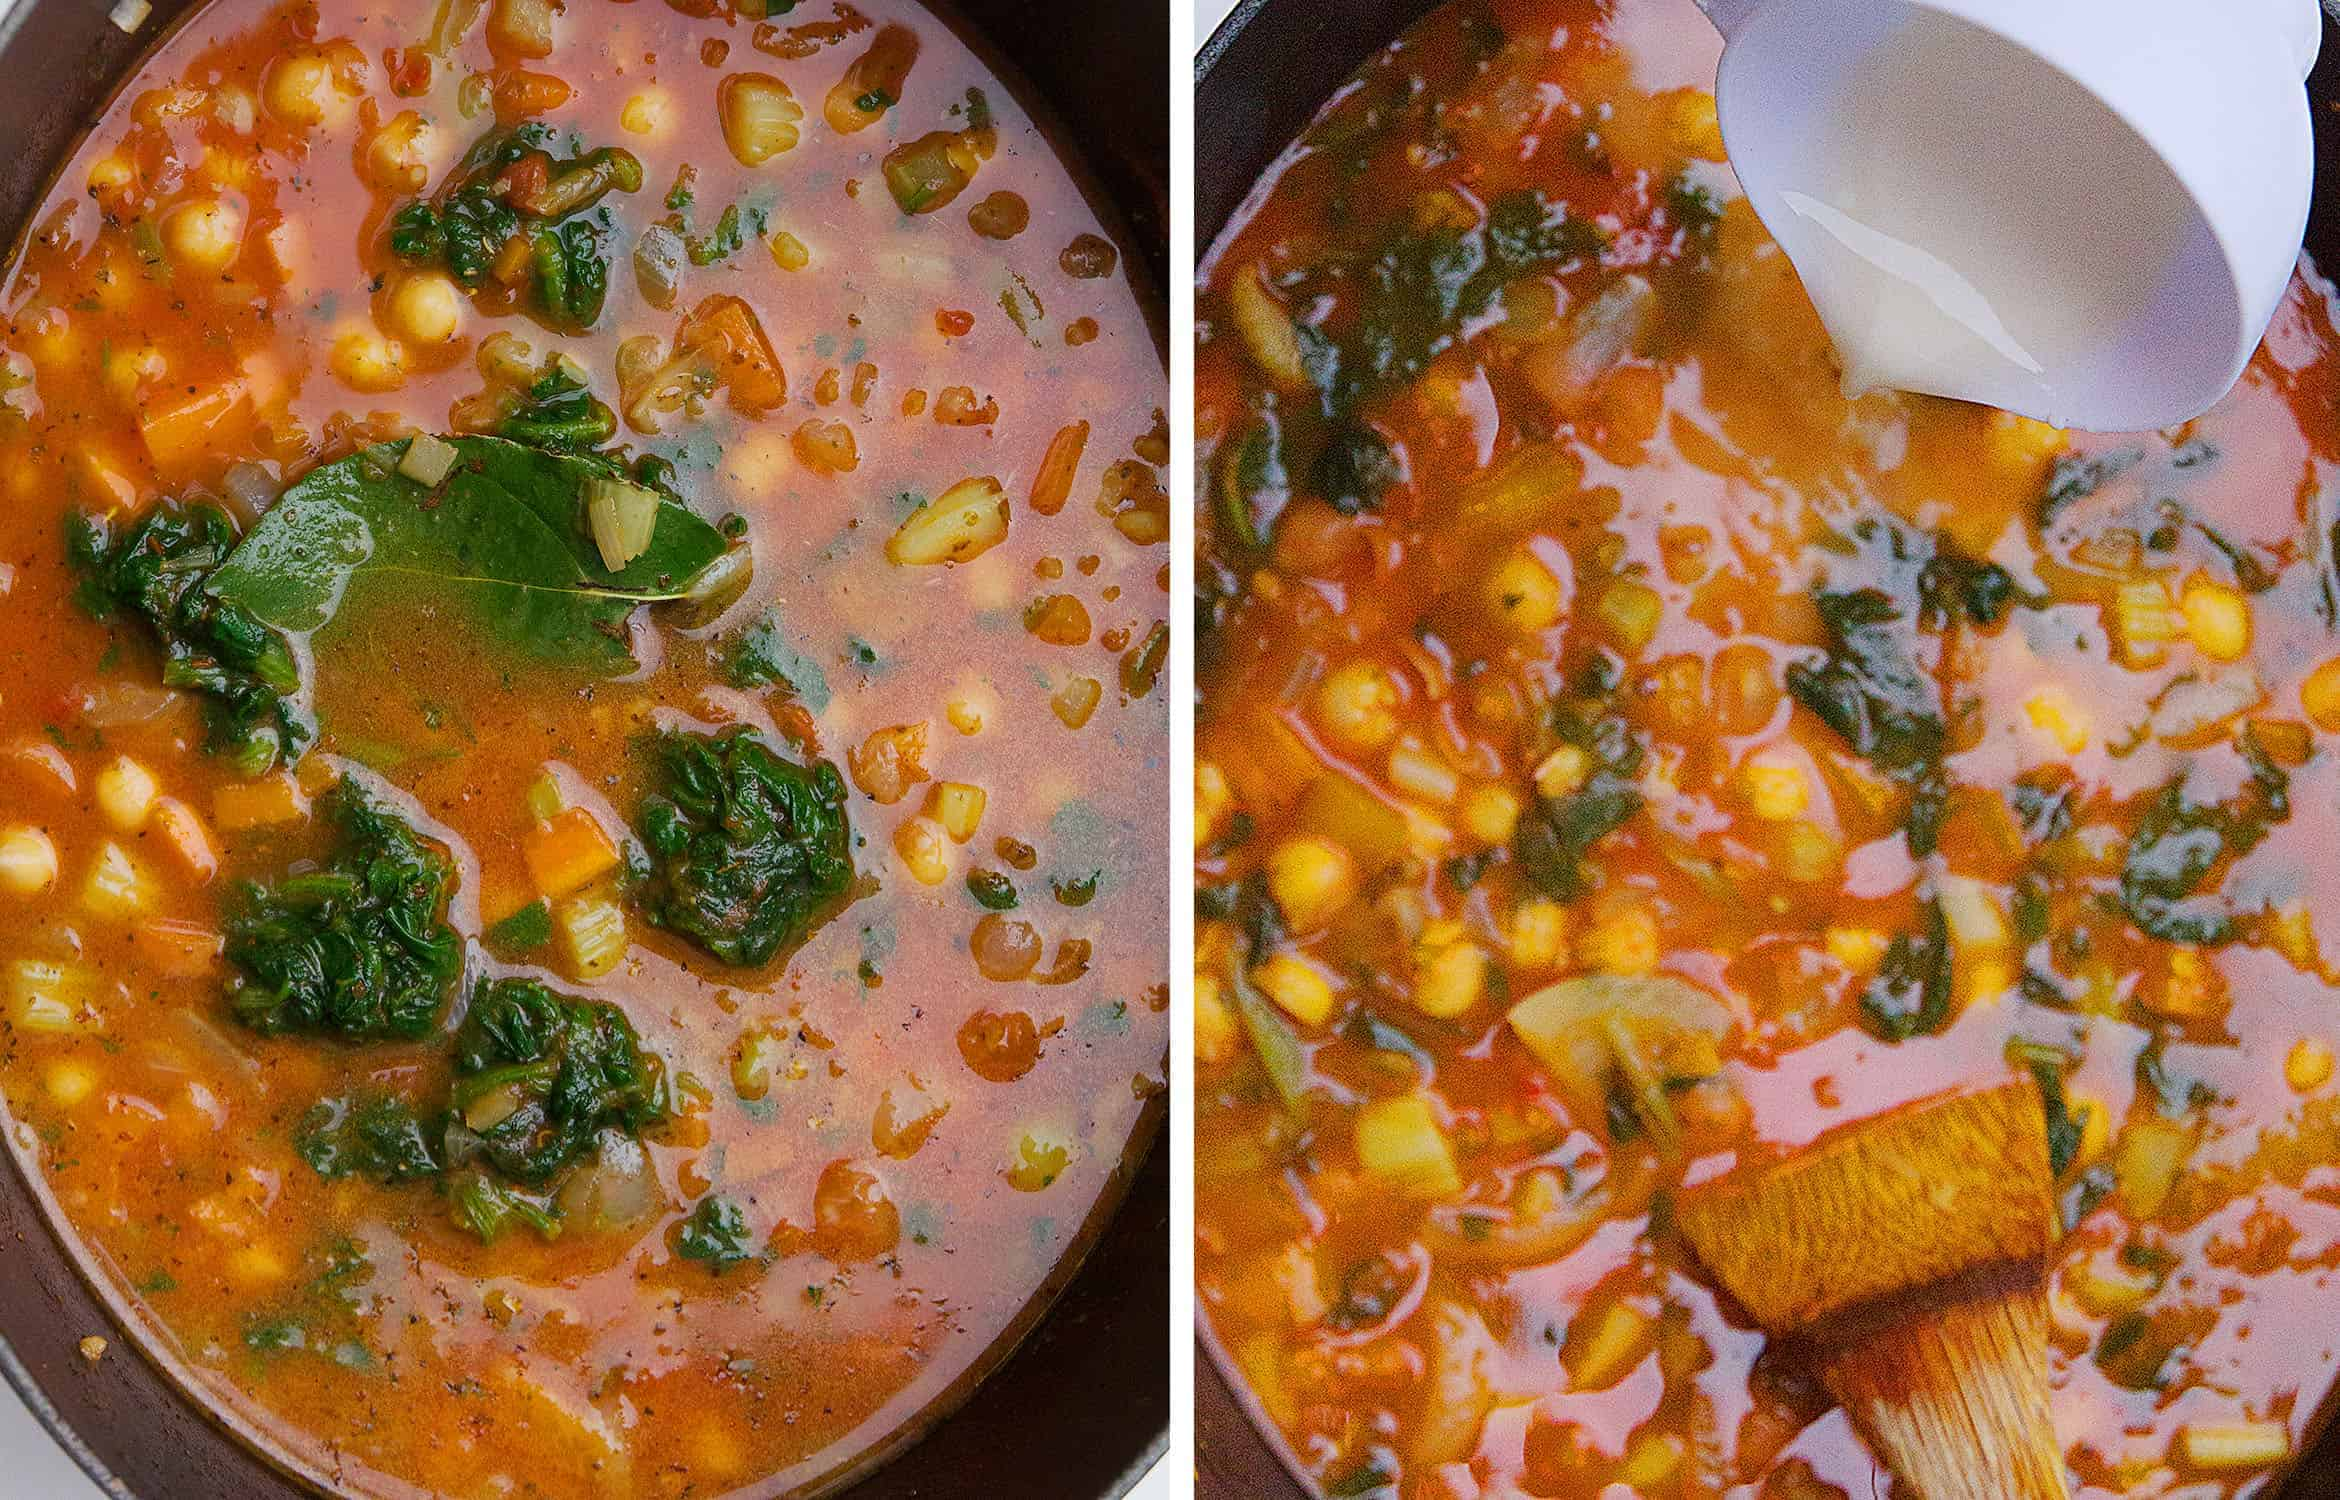 Step-by-step photos to make this easy chickpea soup from scratch.